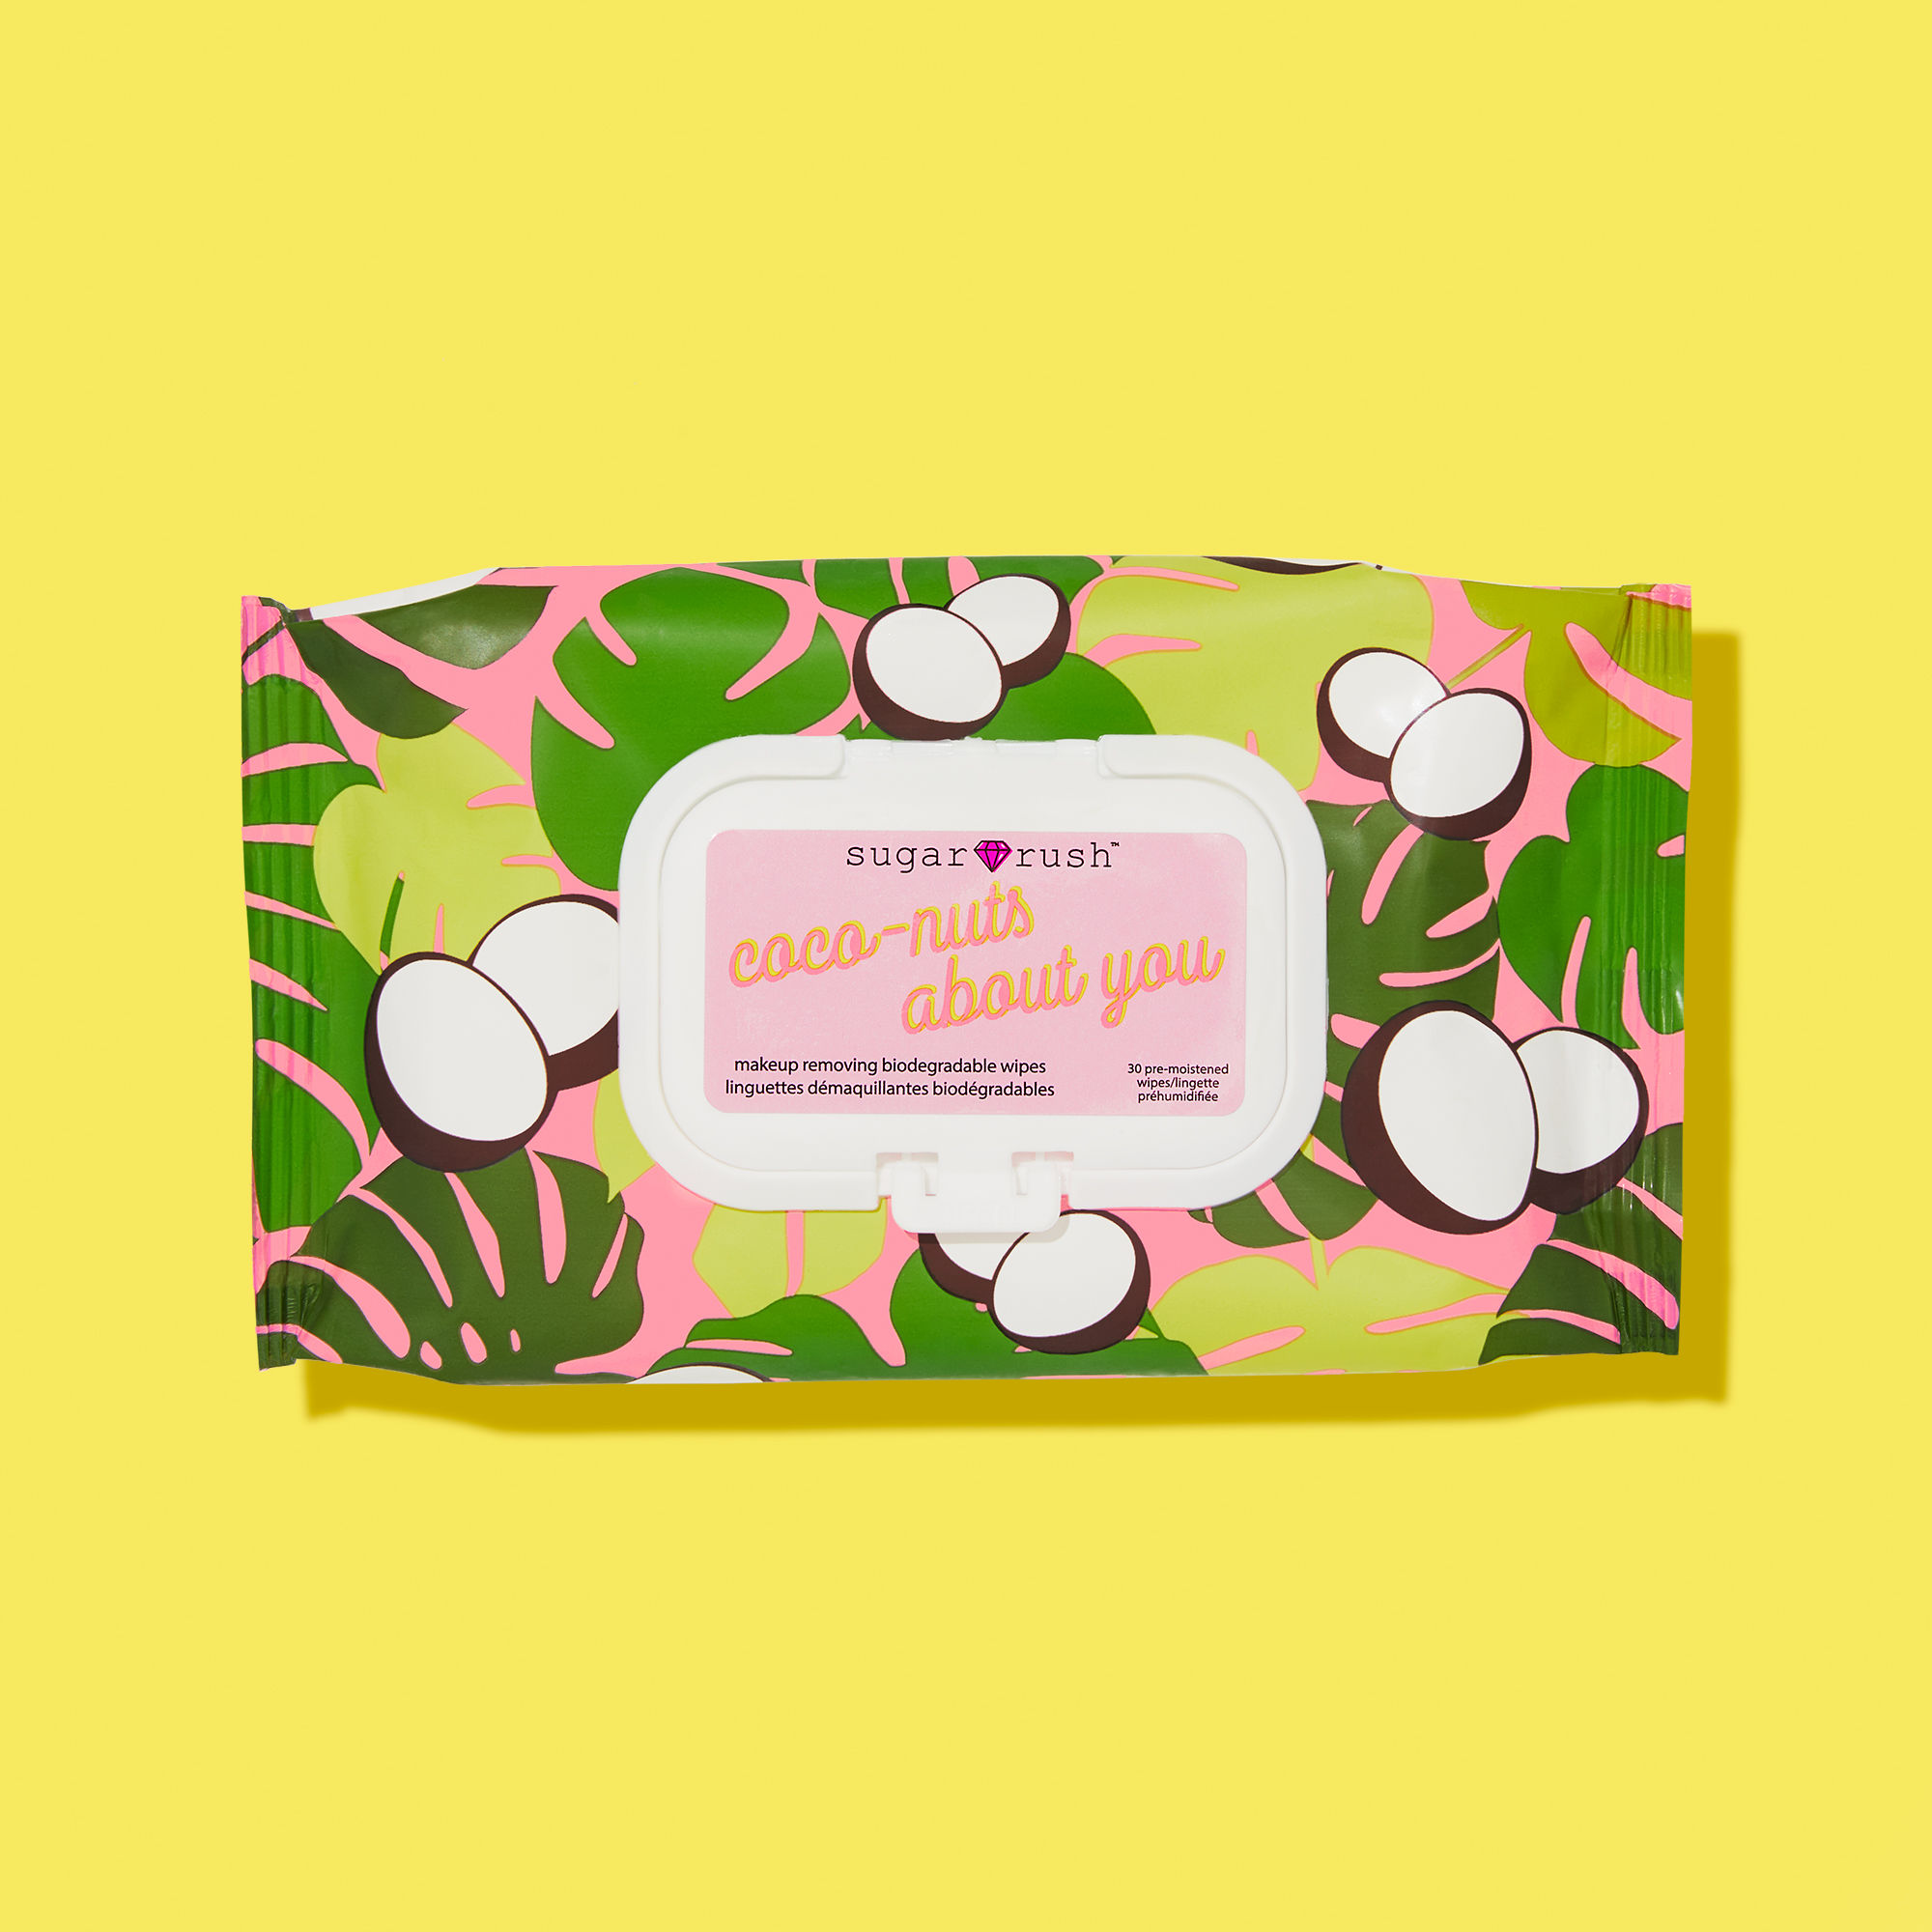 5039-SGR-coco-nuts-about-you-makeup-remover-wipes-main-img-MAIN